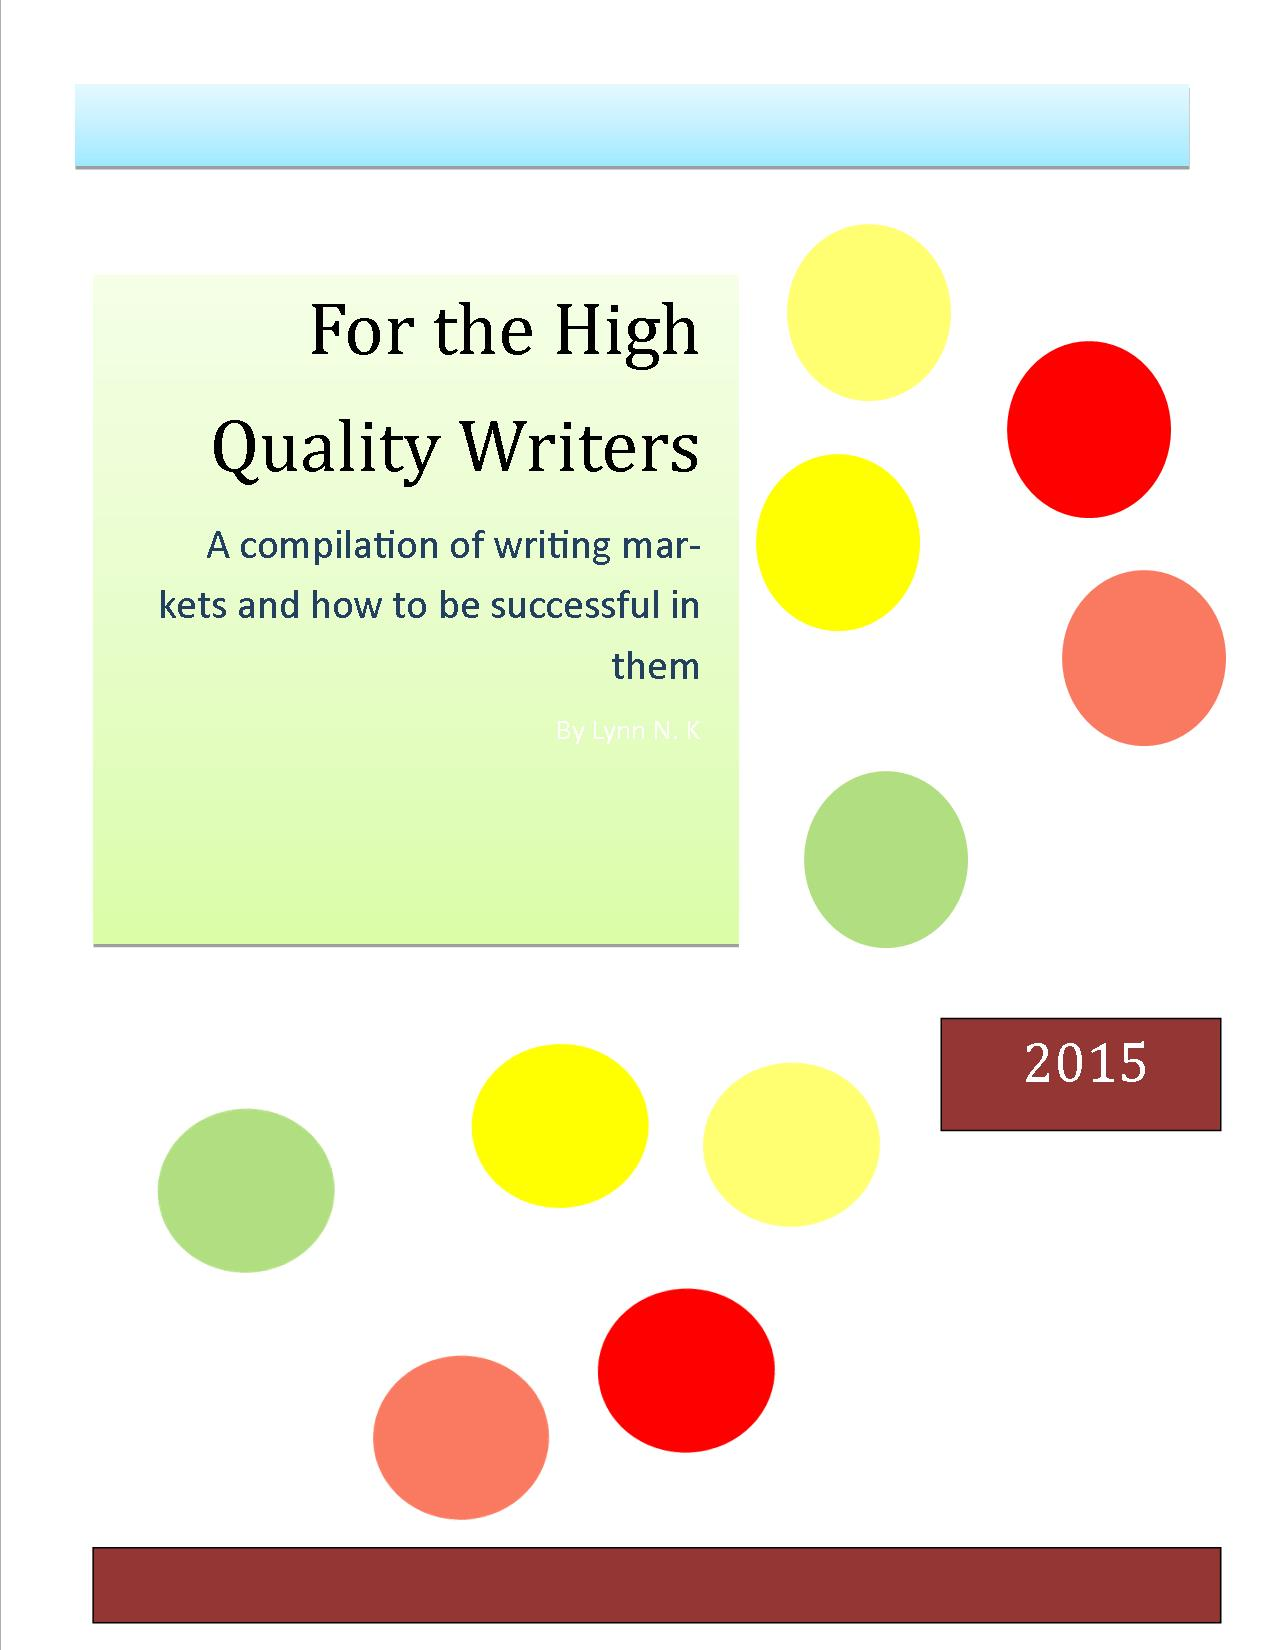 For the High Quality Writers eBook